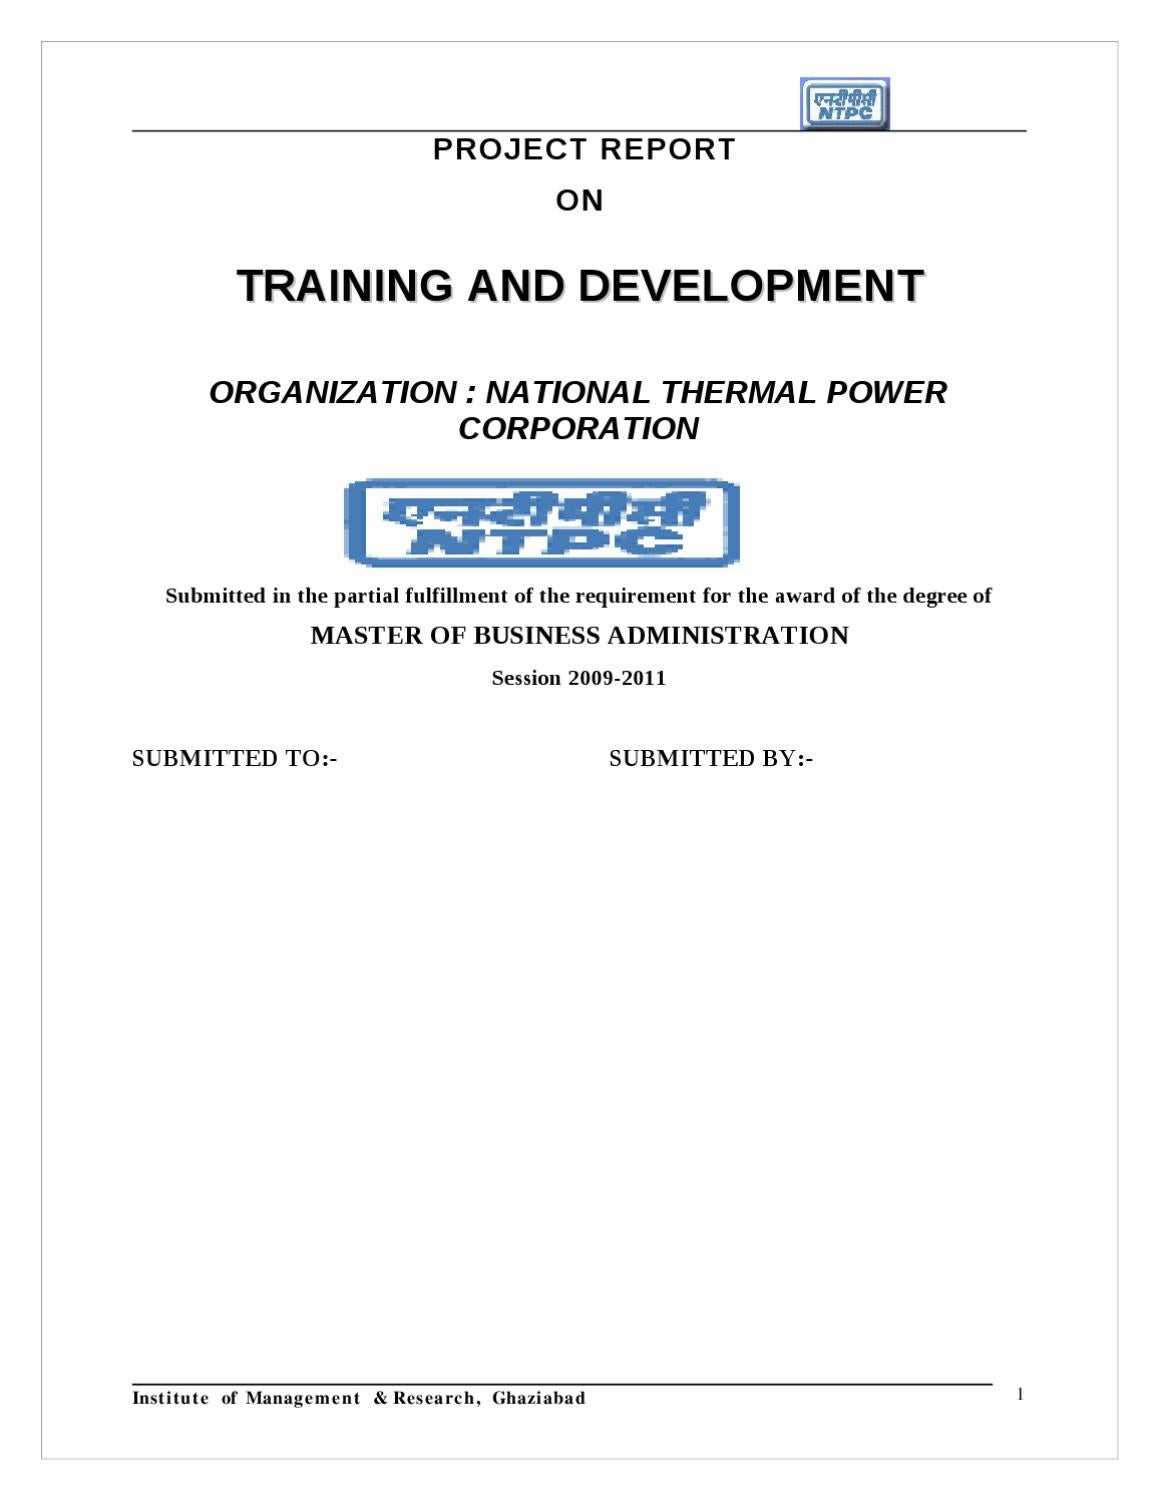 report on training and development practic Evidence-based practice evidence-based design and development decisions are made after reviewing information from repeated rigorous data if these have been published in a peer-reviewed journal or an evaluation report, and if documentation such as training materials has been made.